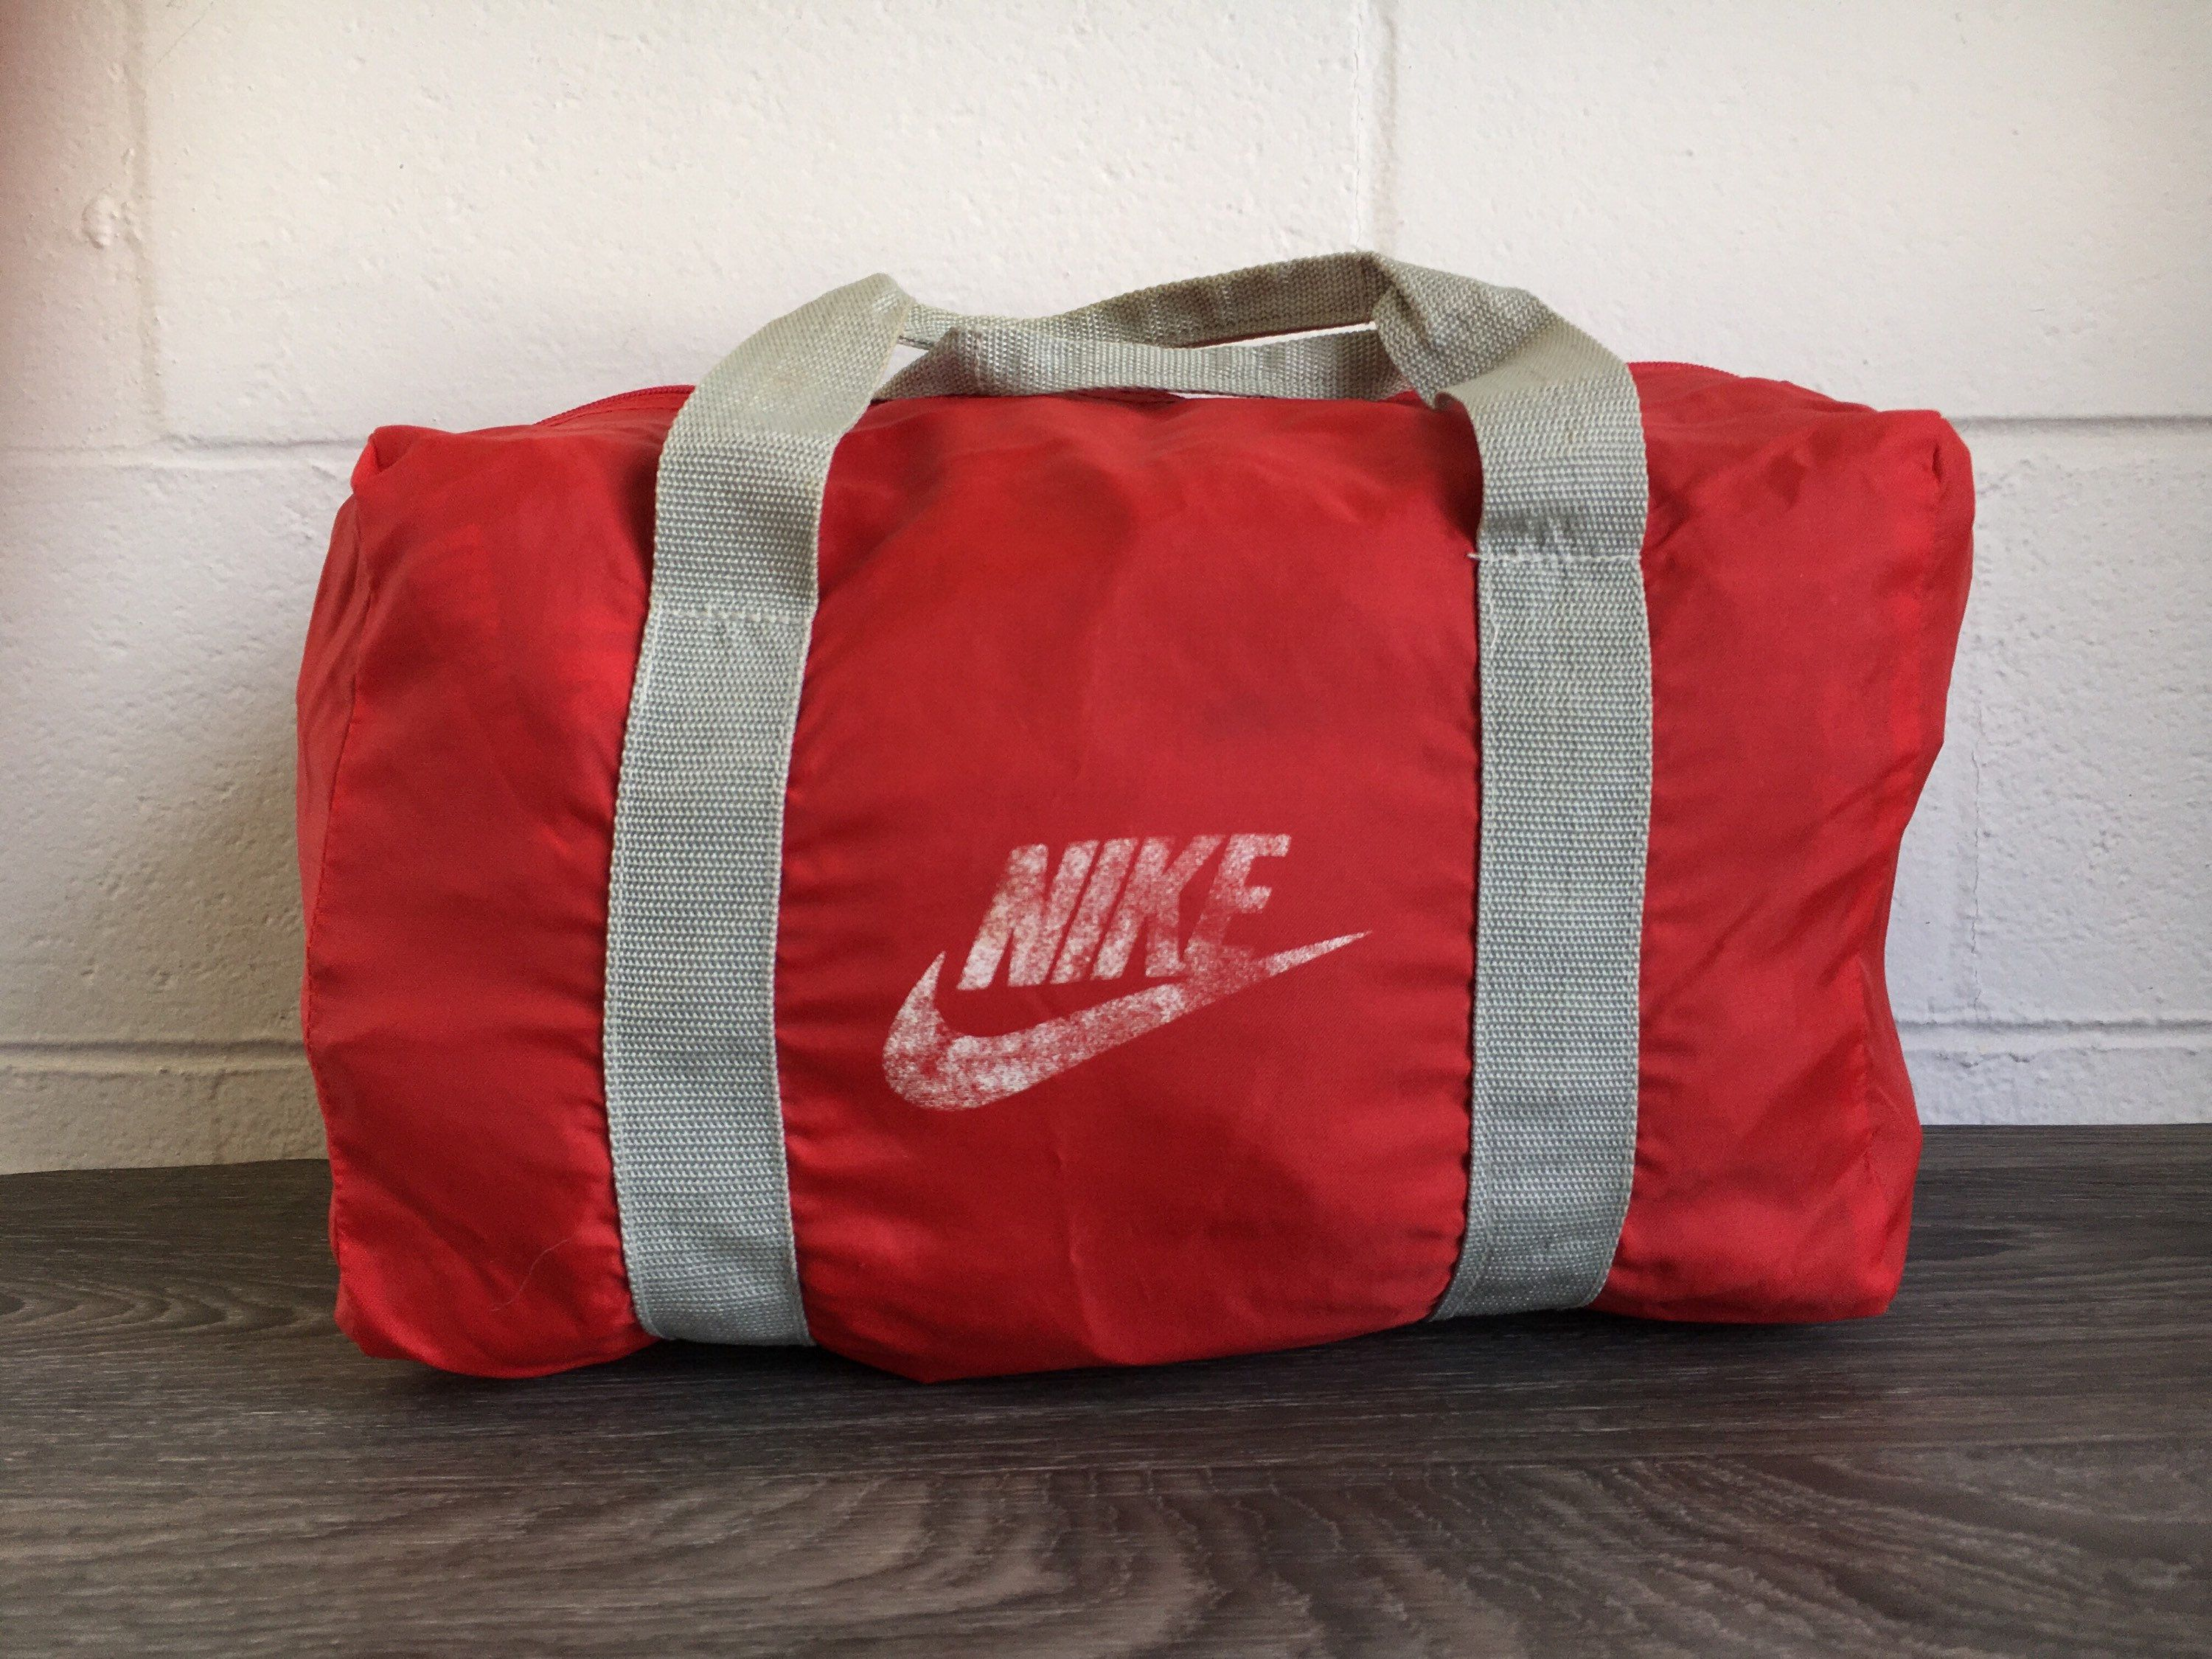 79d3cffc8698 NIKE DUFFLE Bag 80 s Vintage Grey Tag Gym Travel Pack Classic Red Sports  Overnight by sweetVTGtshirt on Etsy